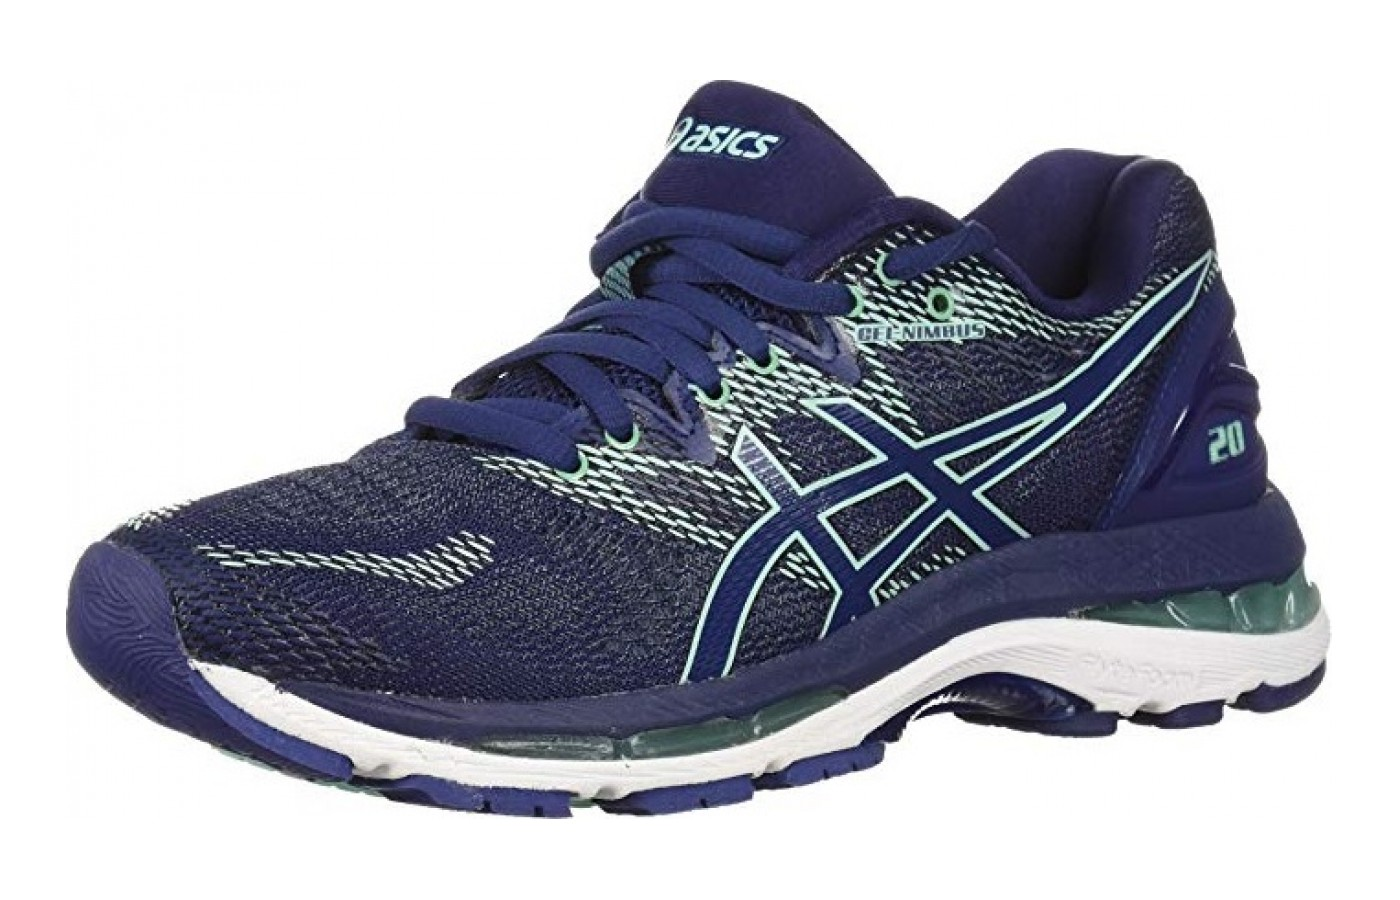 low priced 9a476 a7d61 Asics Gel Nimbus 20 Angled ...